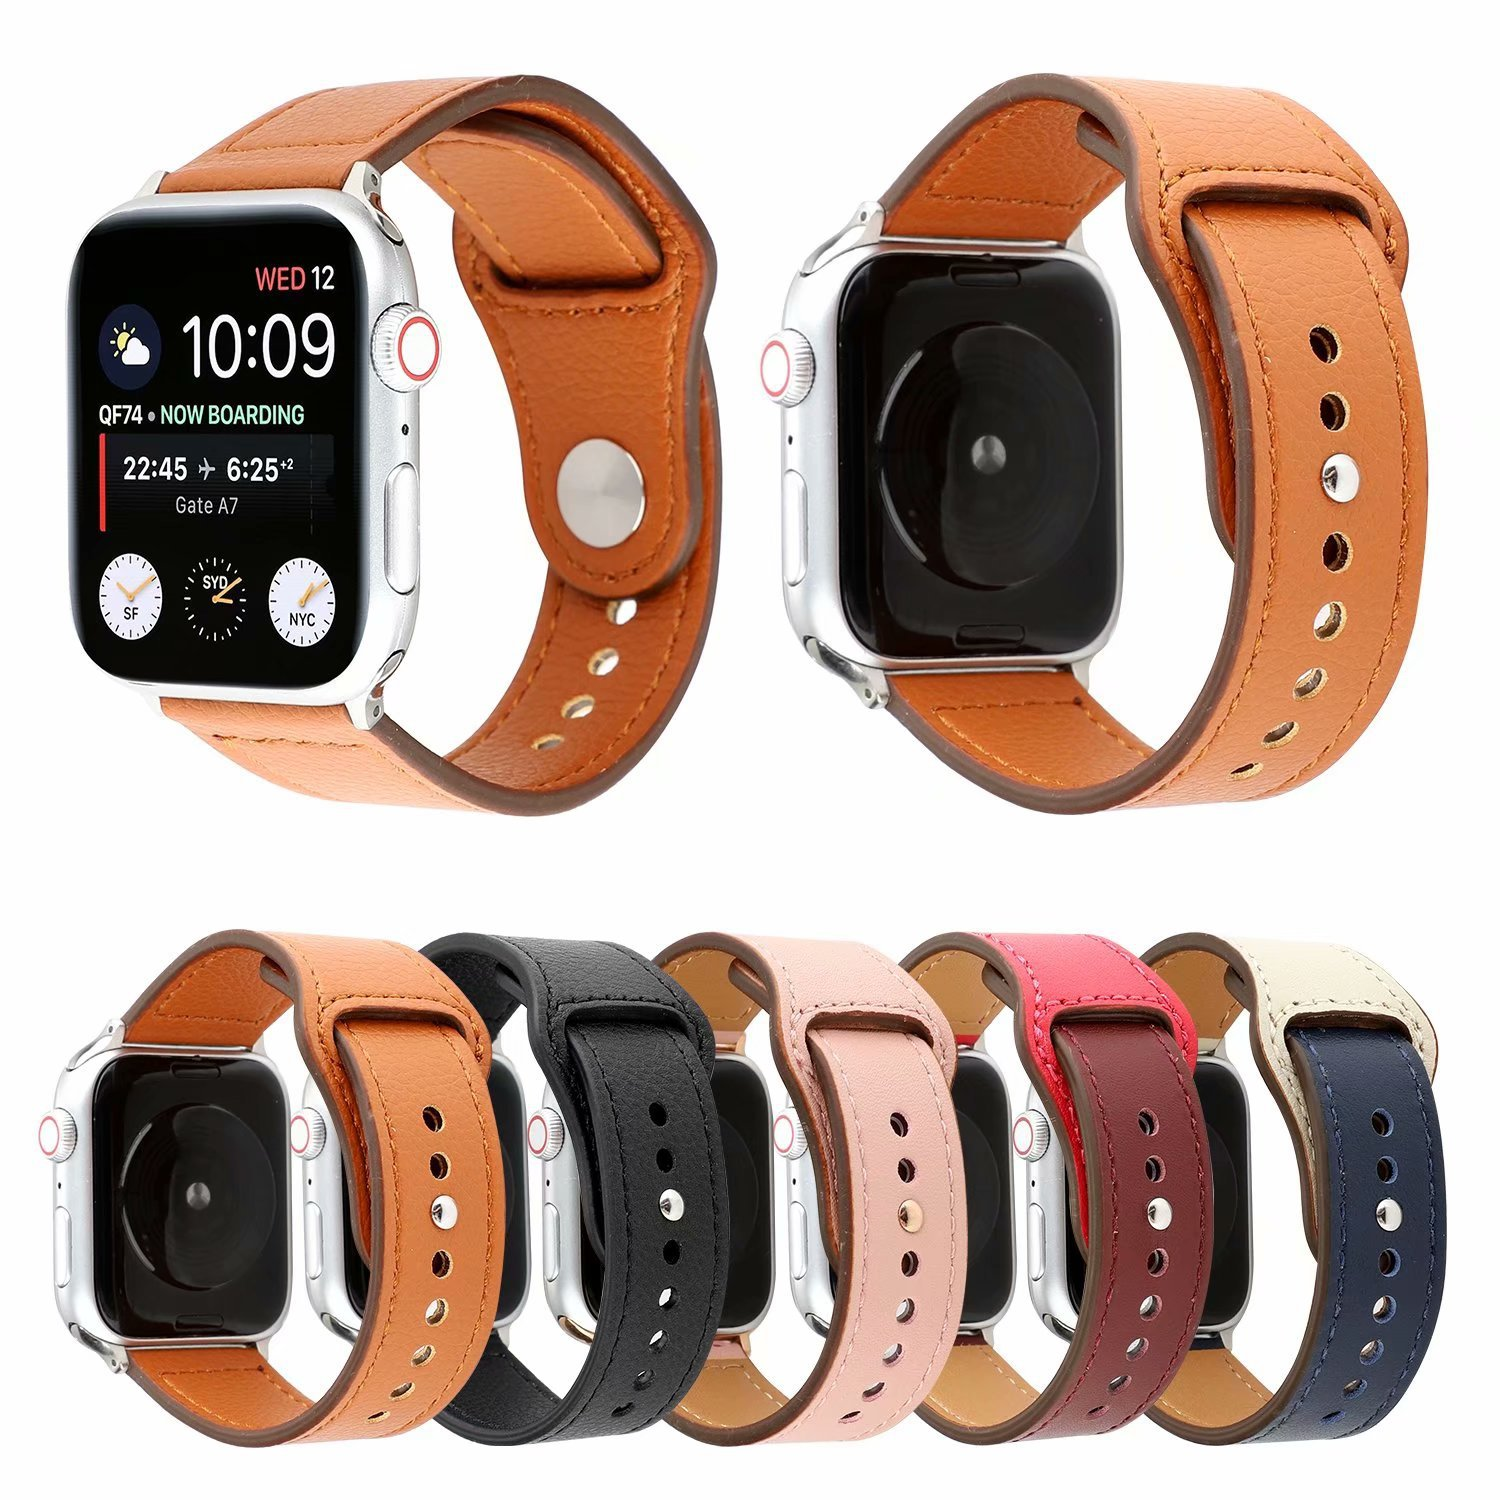 Suitable For Hermes Apple Watch Leather Watch Strap Double Color Round Buckle Iwatch1234 S Contrast Color Sports Watch Strap